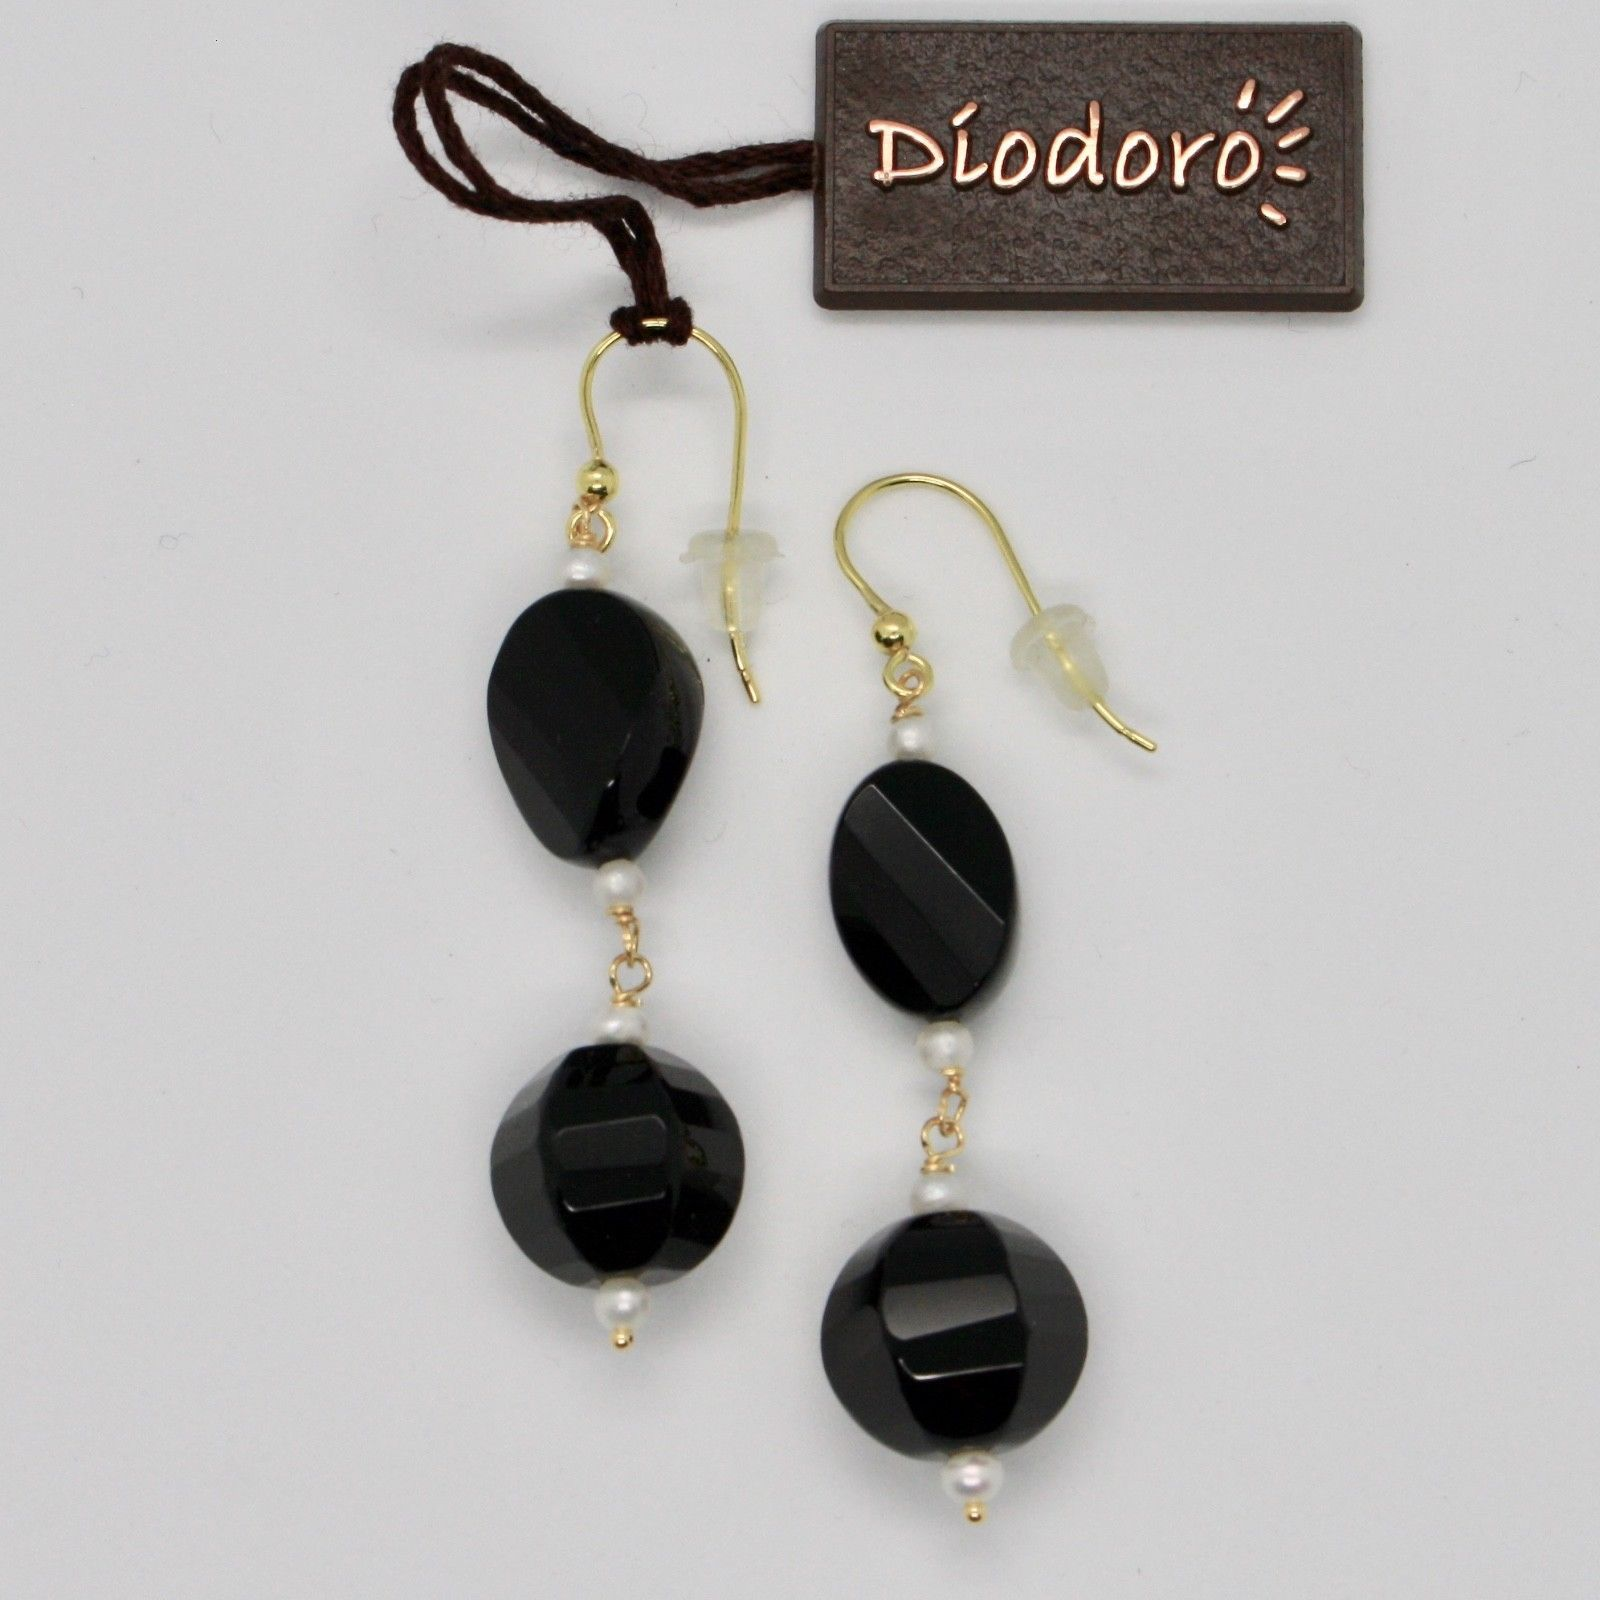 SOLID 18K YELLOW GOLD EARRINGS WITH WHITE FW PEARLS AND BLACK ONYX MADE IN ITALY